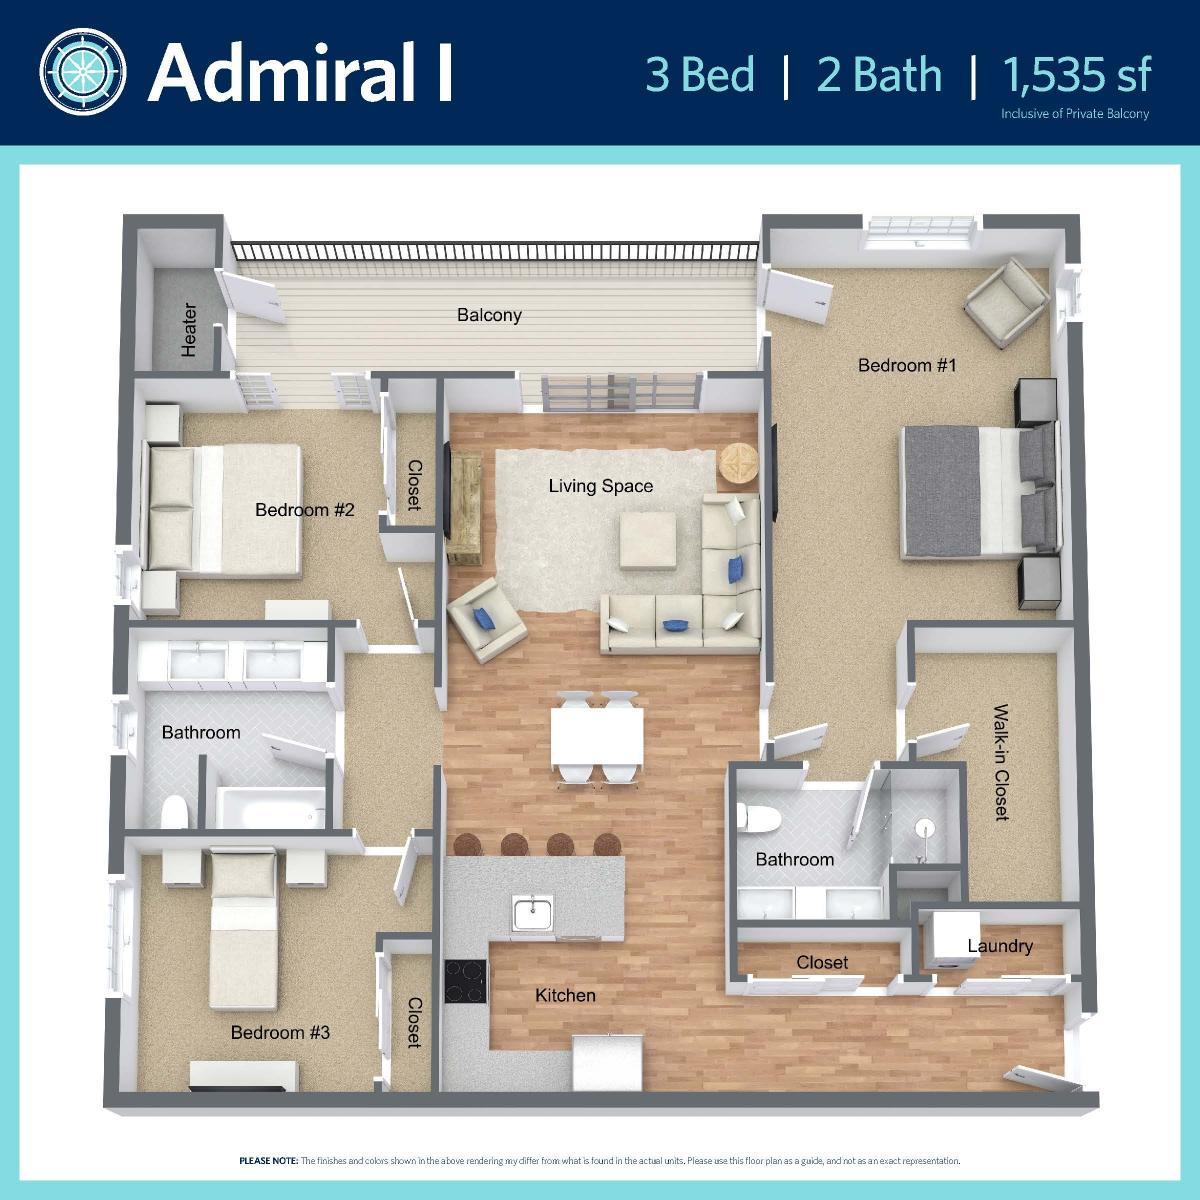 Admiral I - 3 bed, 2 bath - 1,535 sq ft